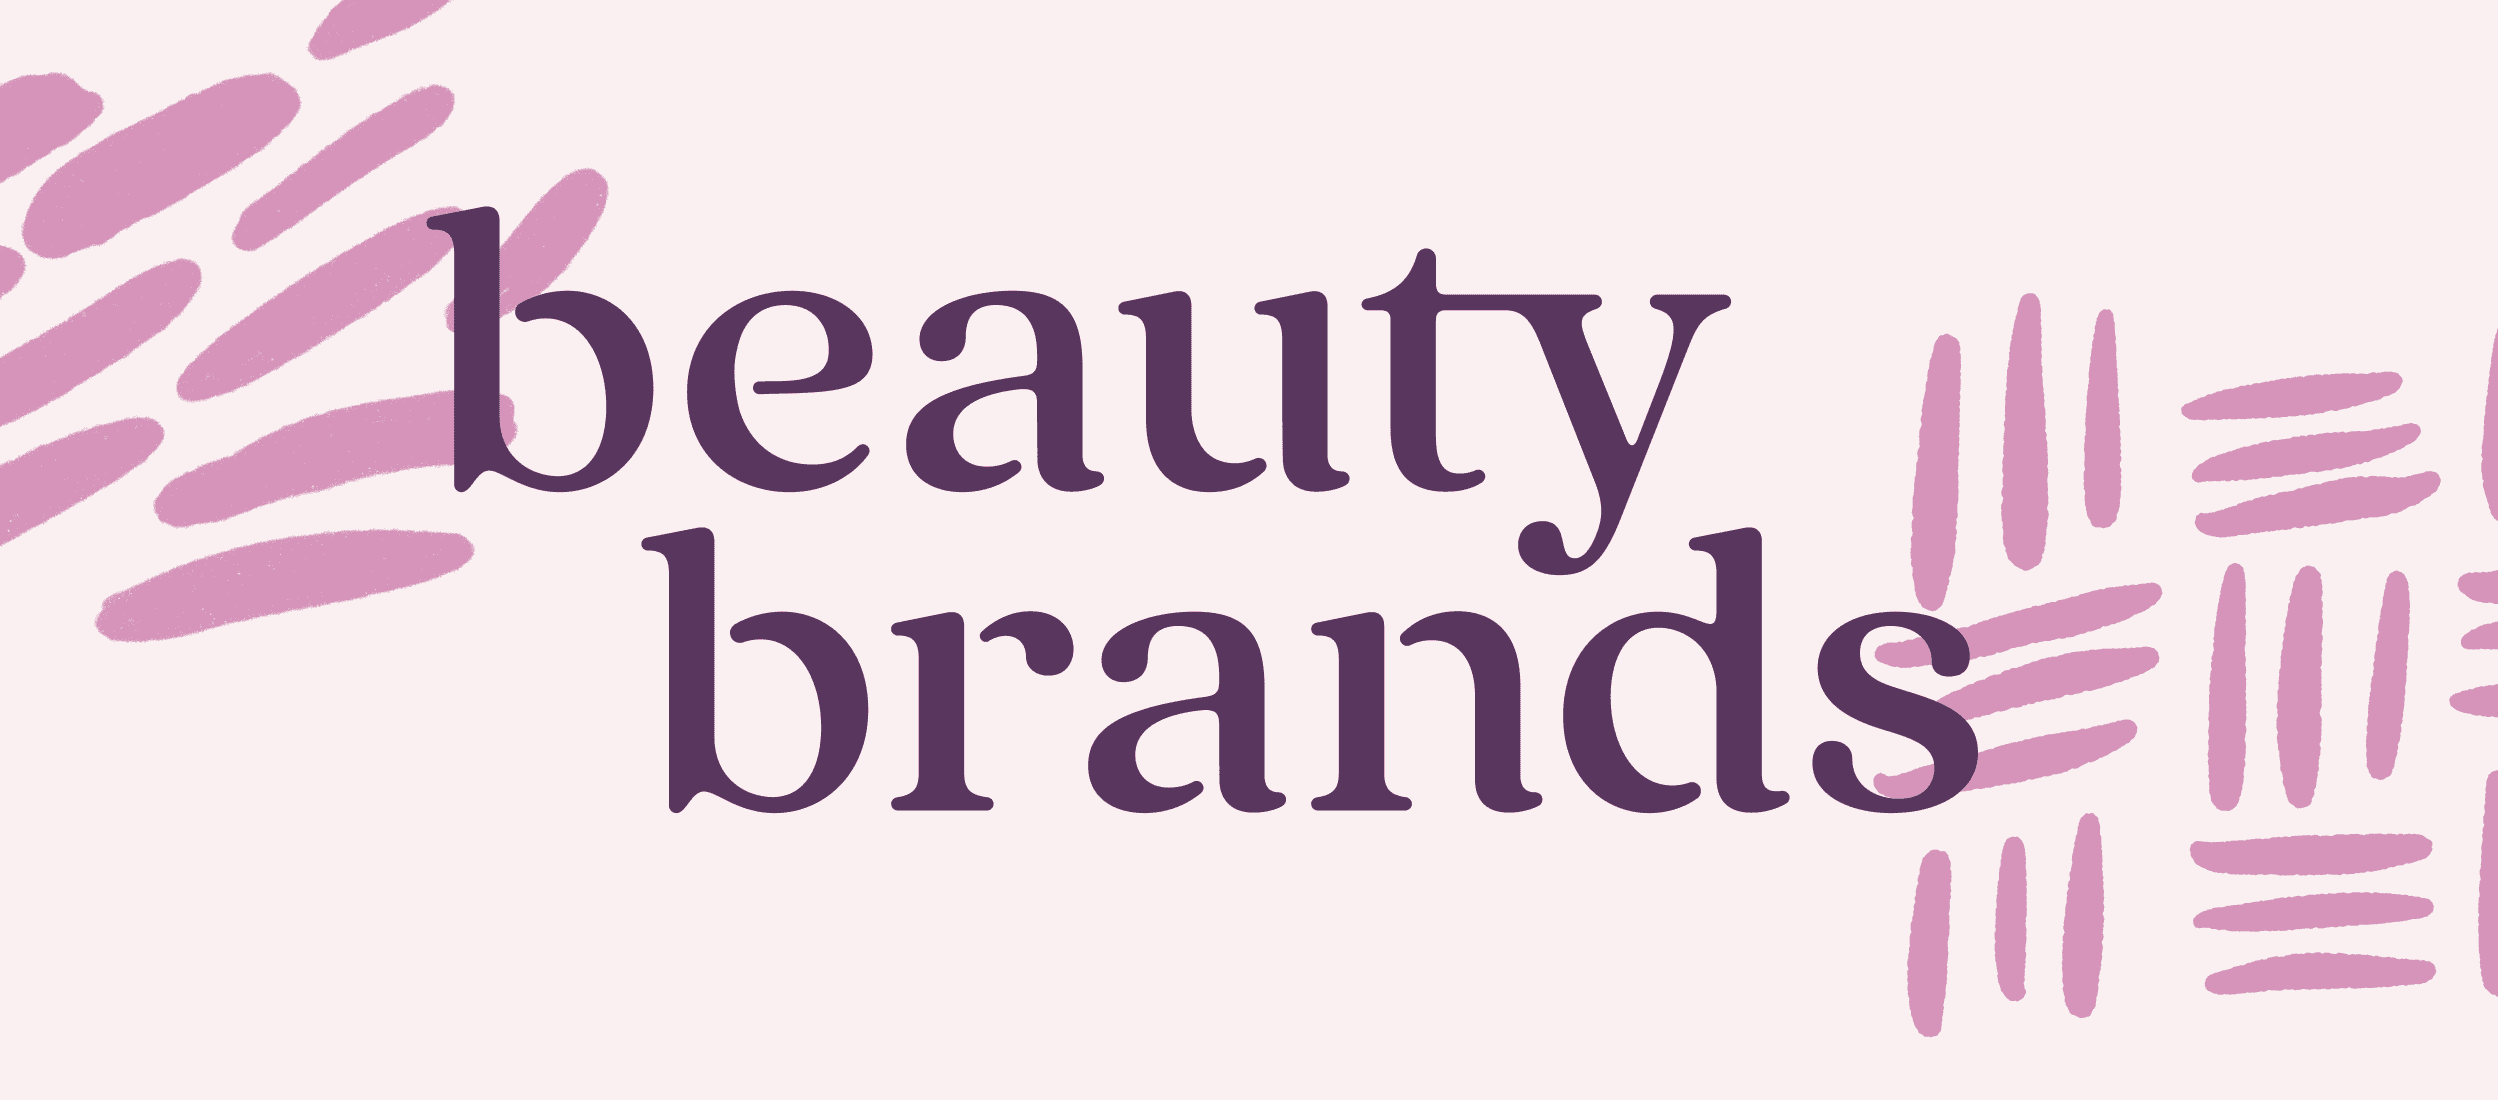 Beauty Brands' new brand identity and positioning, designed by Fenix Strategic Design.